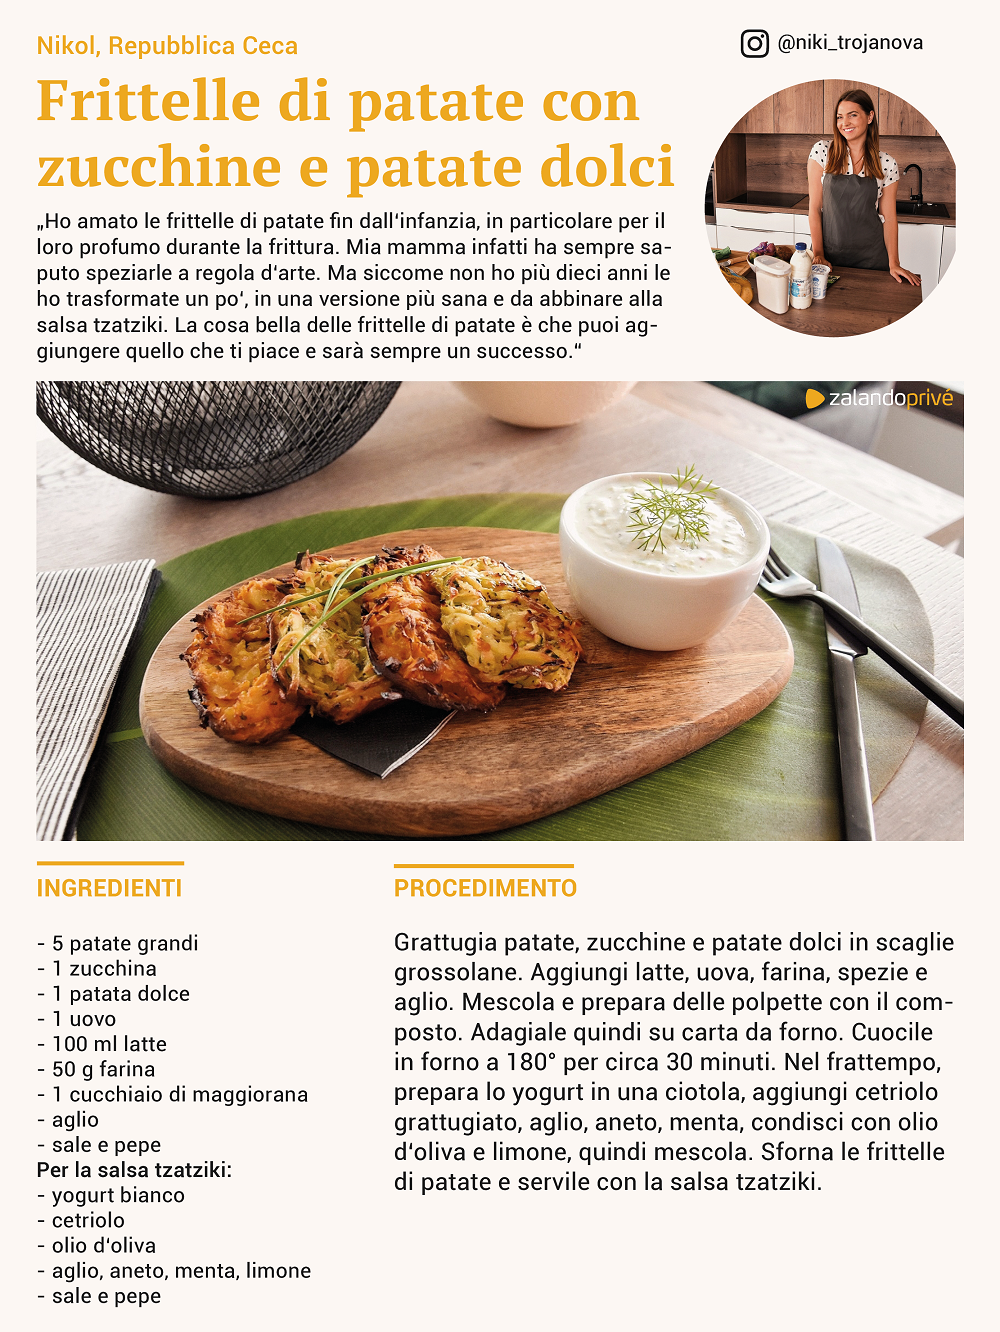 ricetta frittelle patate zucchine patate dolci